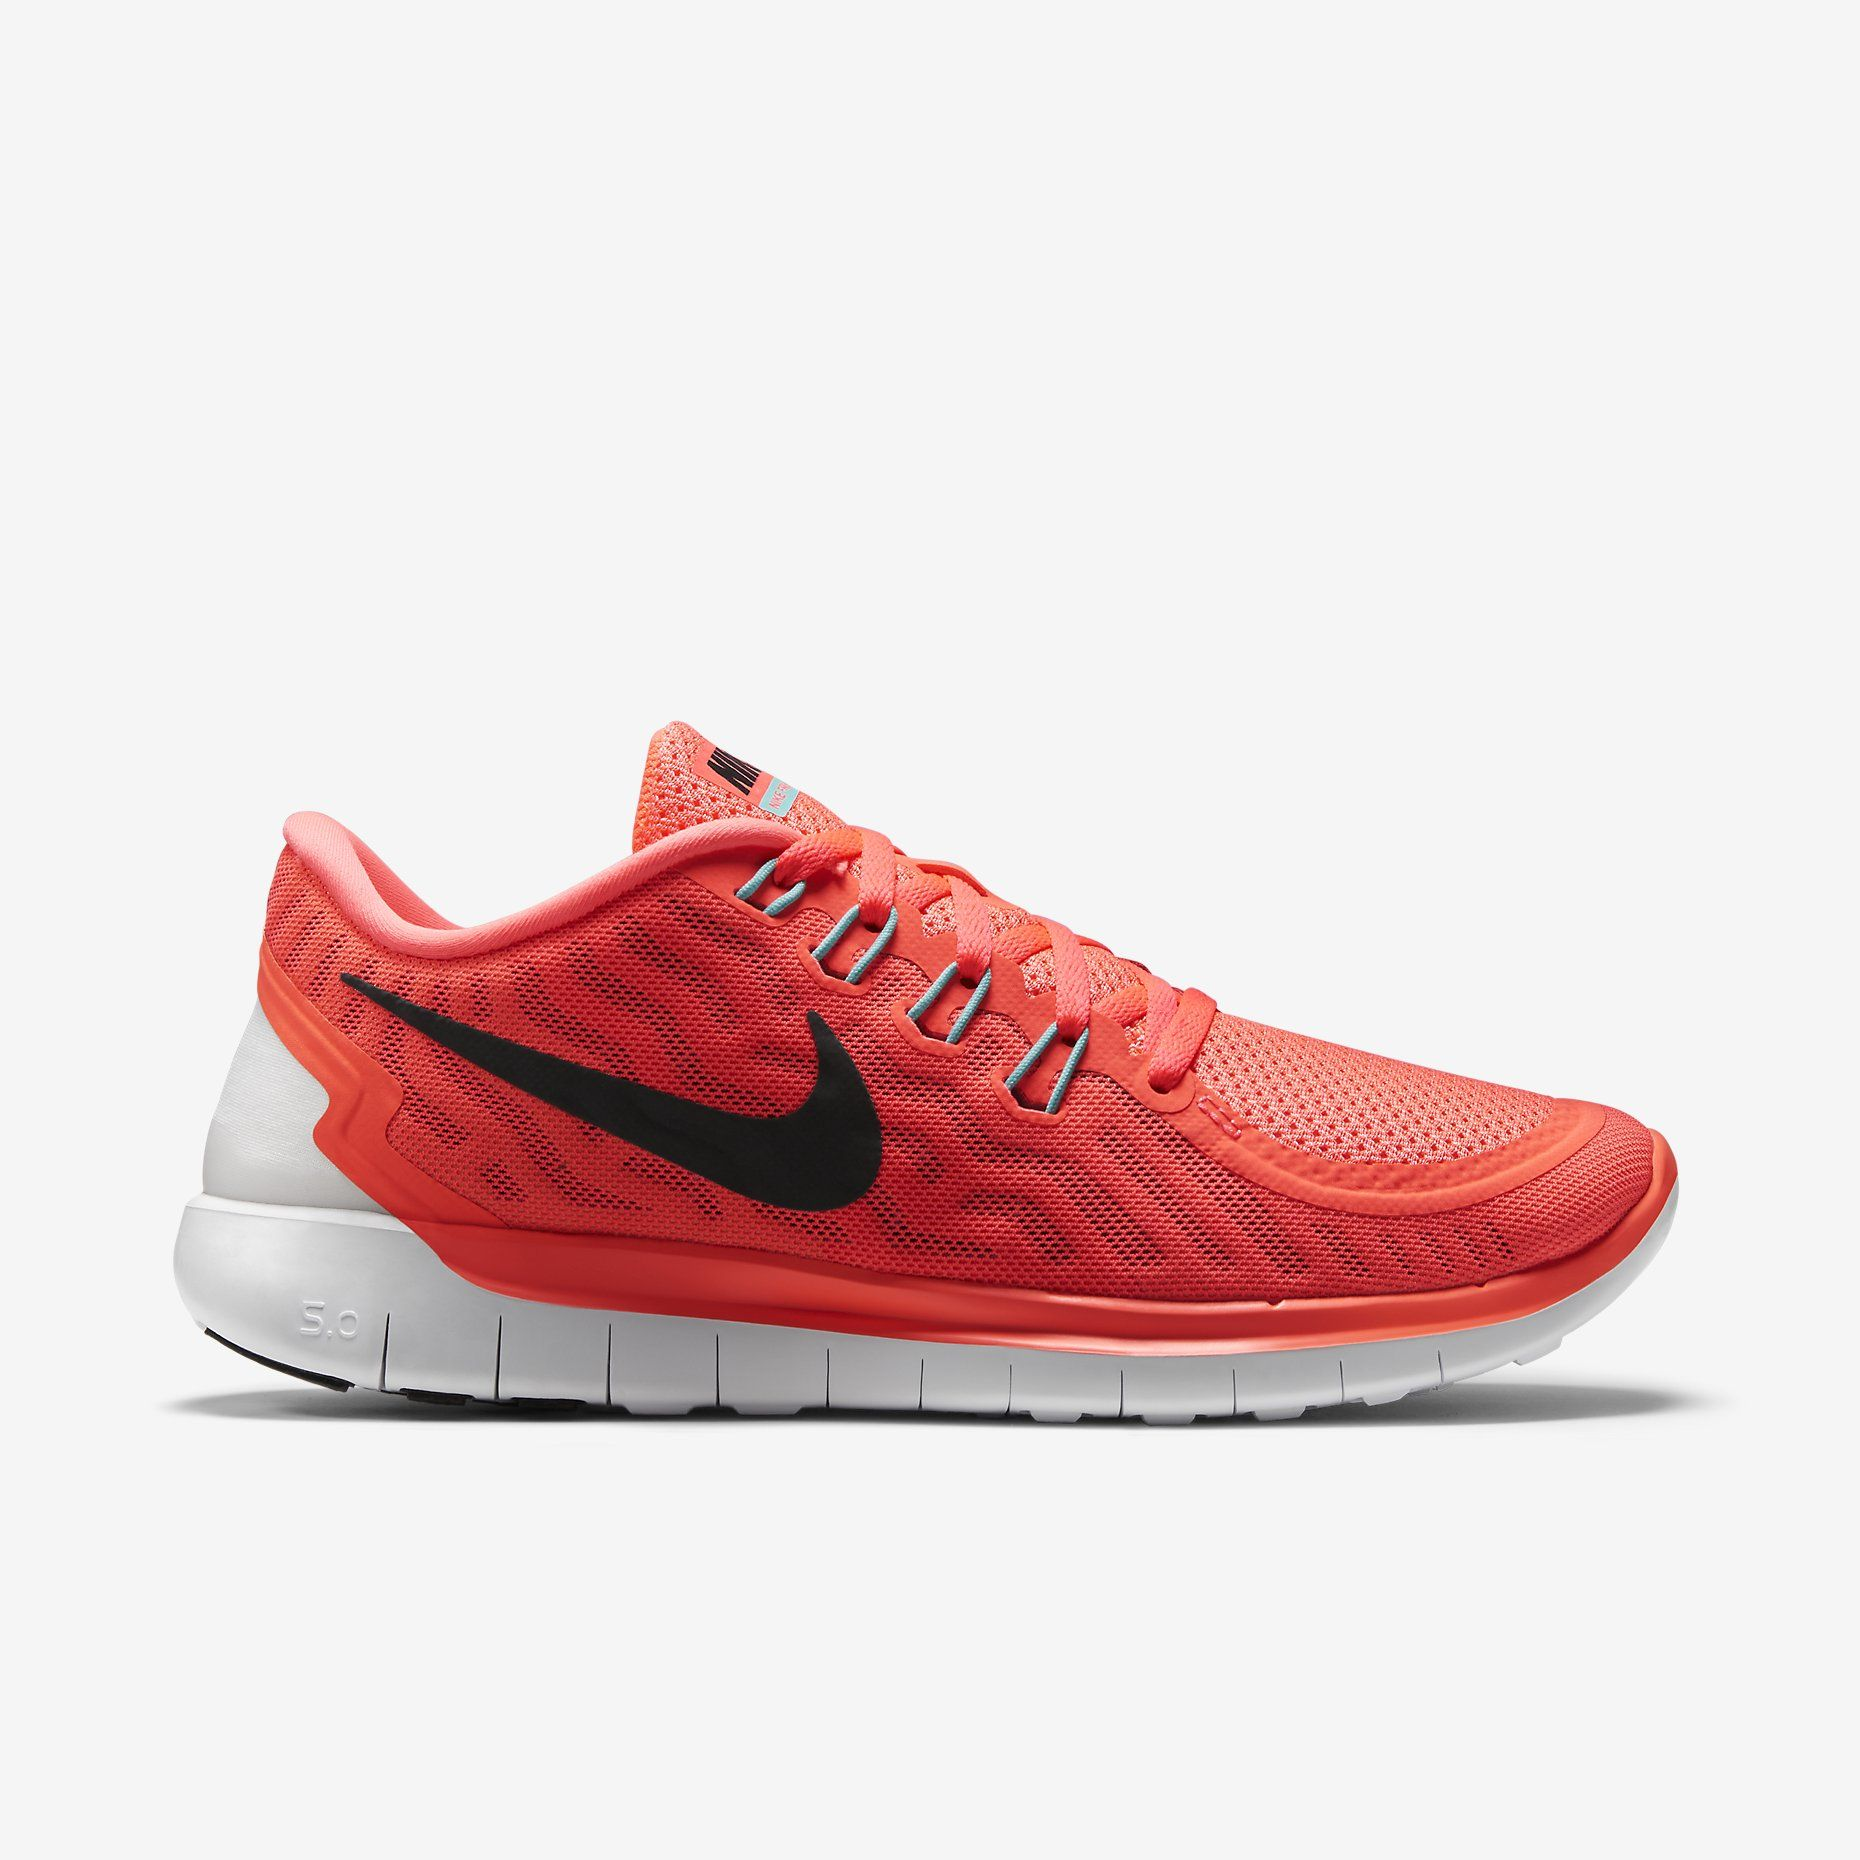 plus récent f23ad 18342 Nike Free 5.0 – Chaussure de running pour Femme. Nike Store ...